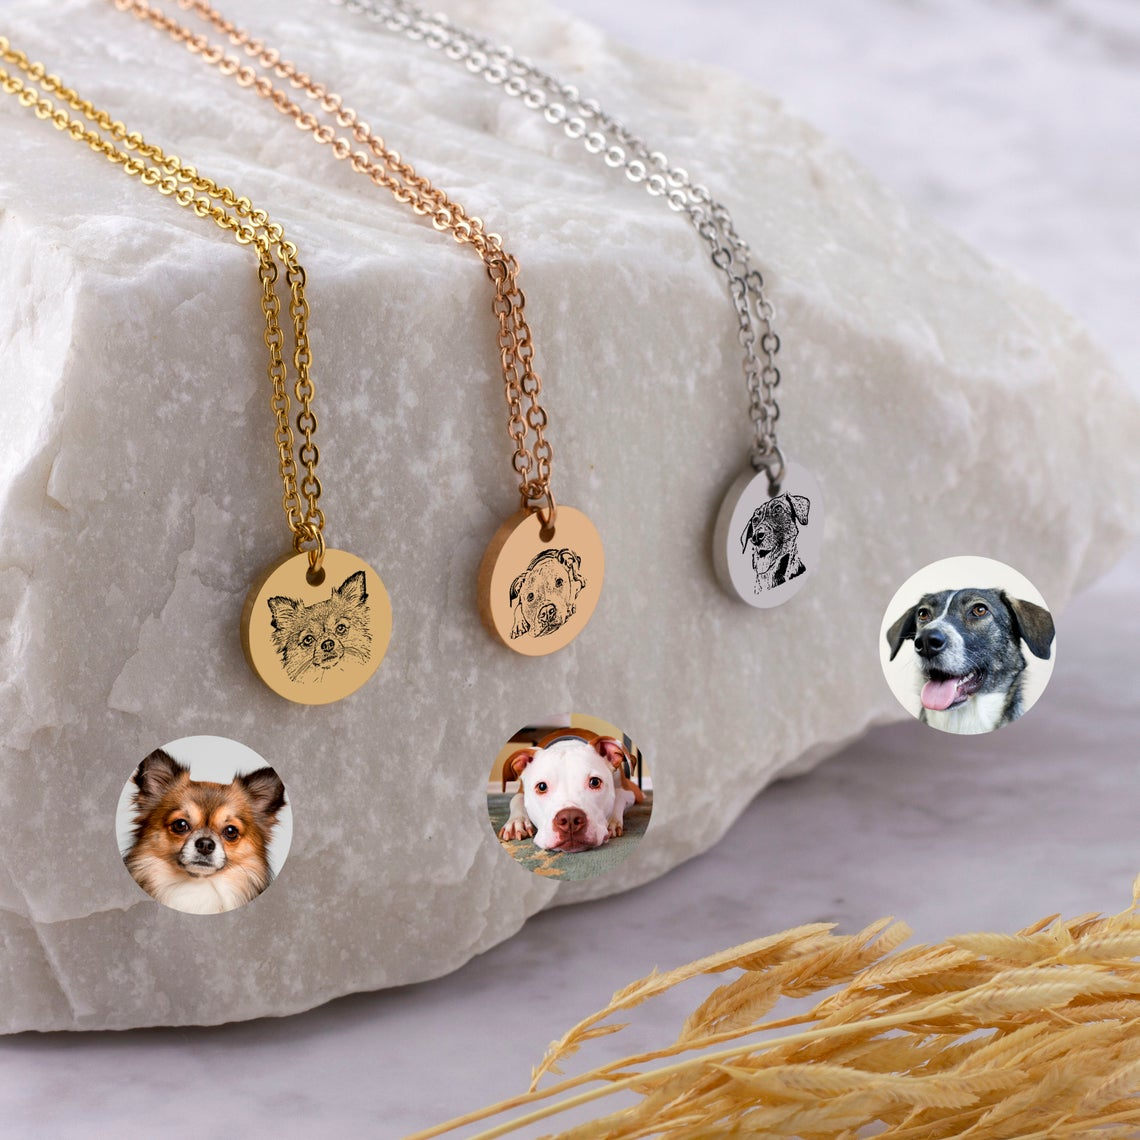 925 Sterling Silver Personalized Pet Photo Engraved Necklace Gift for Cat Lovers